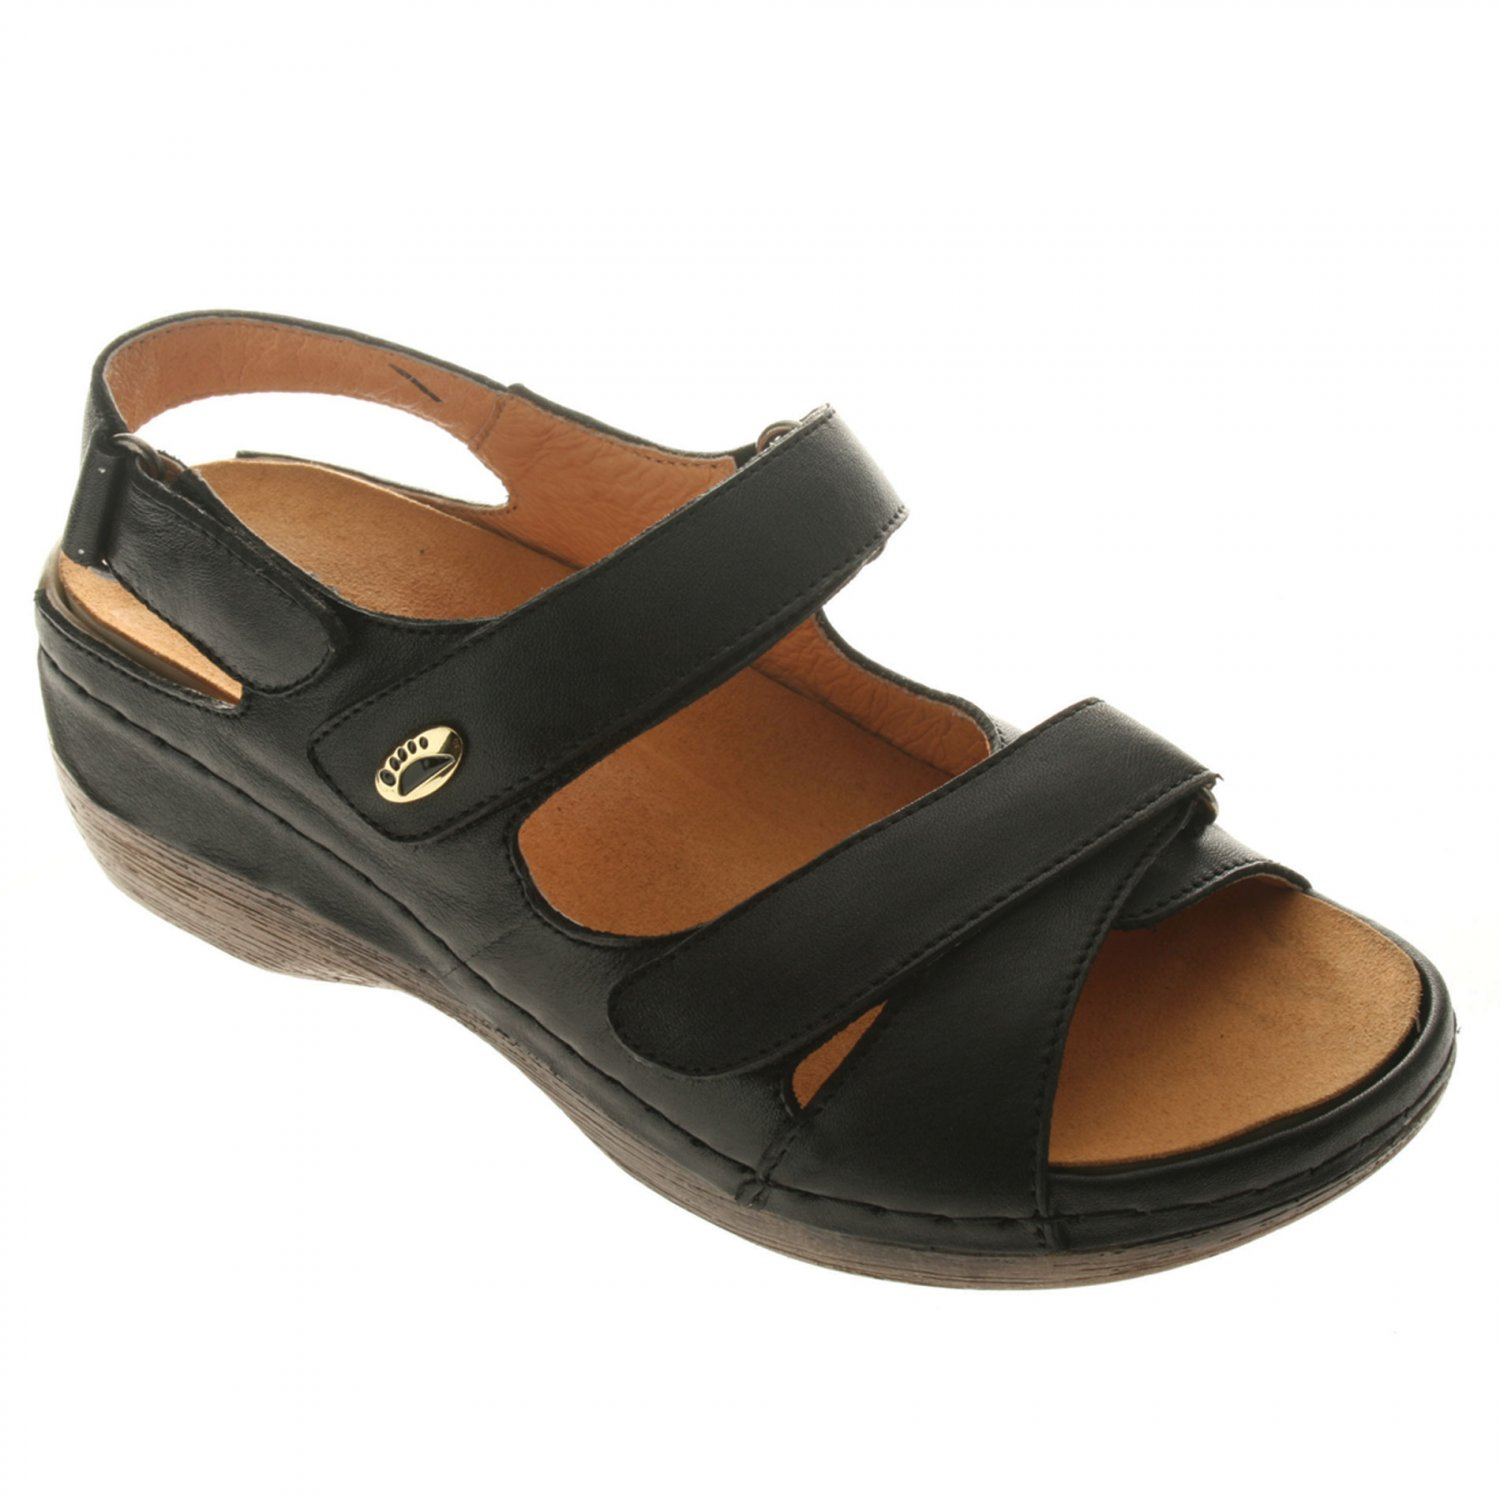 Spring Step RADIANCE Sandals Shoes All Sizes & Colors